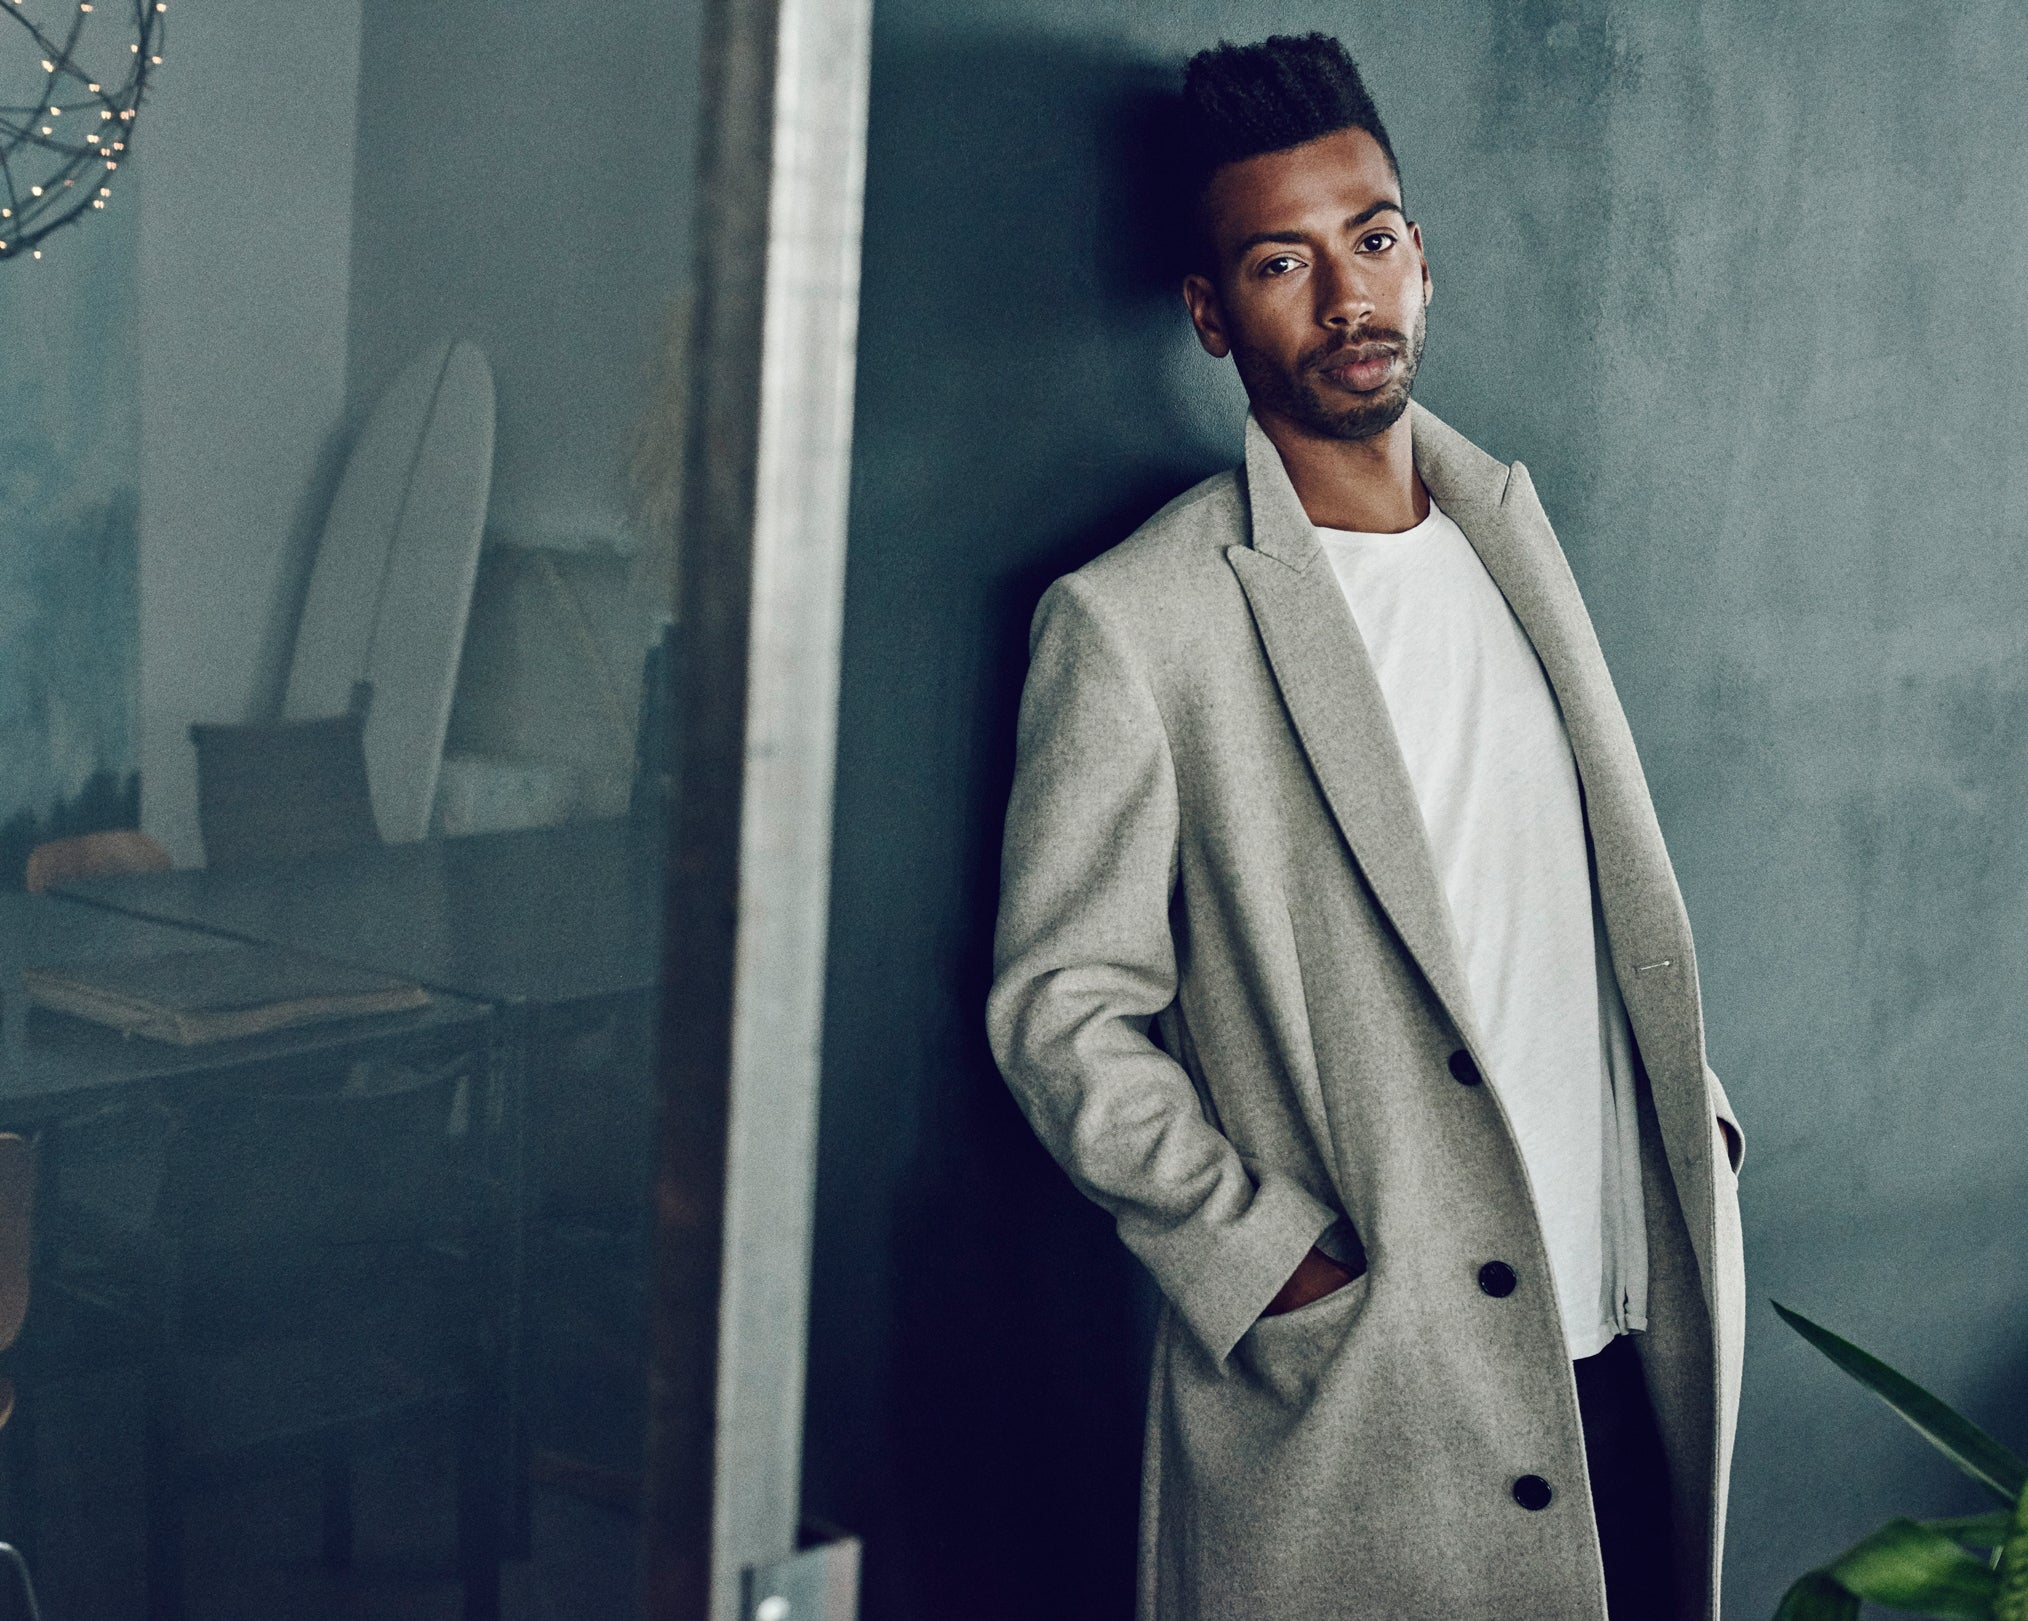 Amilcar Gomes wearing Gilles Unconstructed Wool Overcoat & Lothar T-shirt by SALLE PRIVÉE